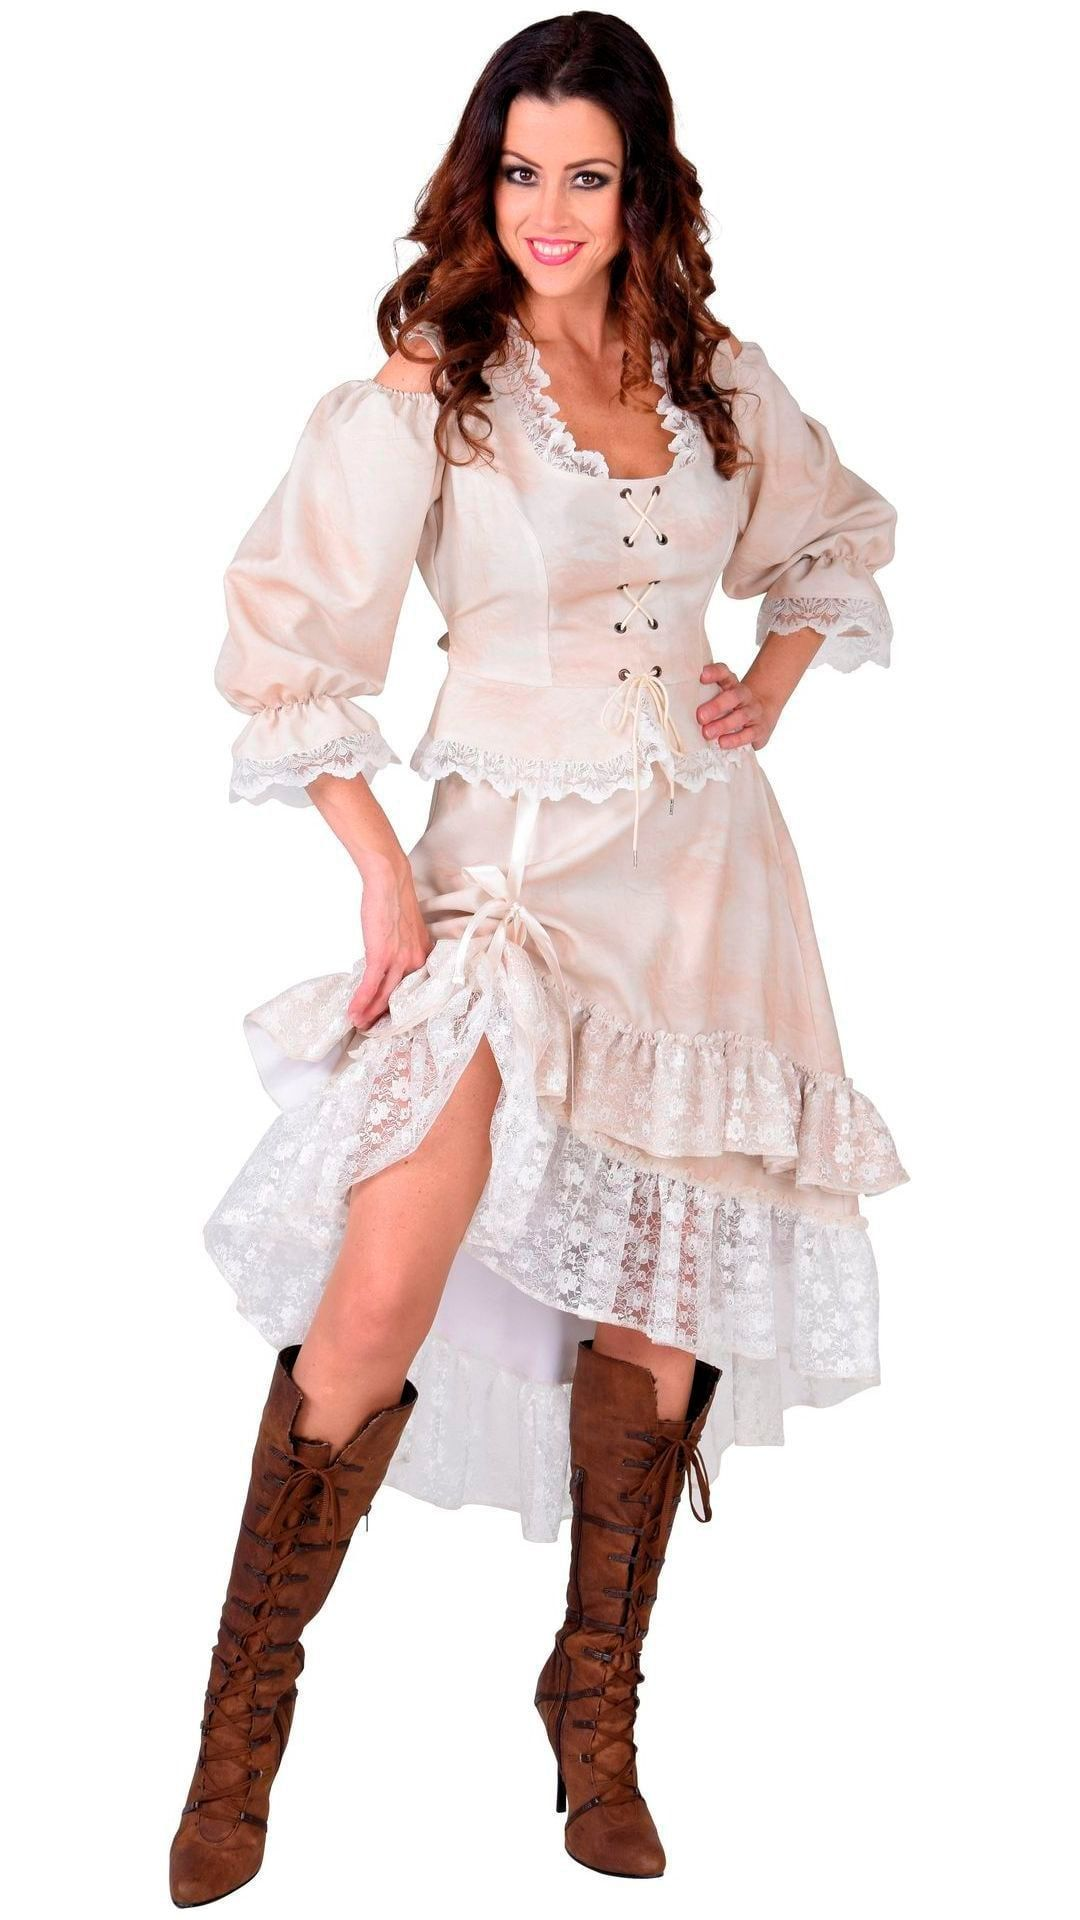 Wild west saloon girl rokje